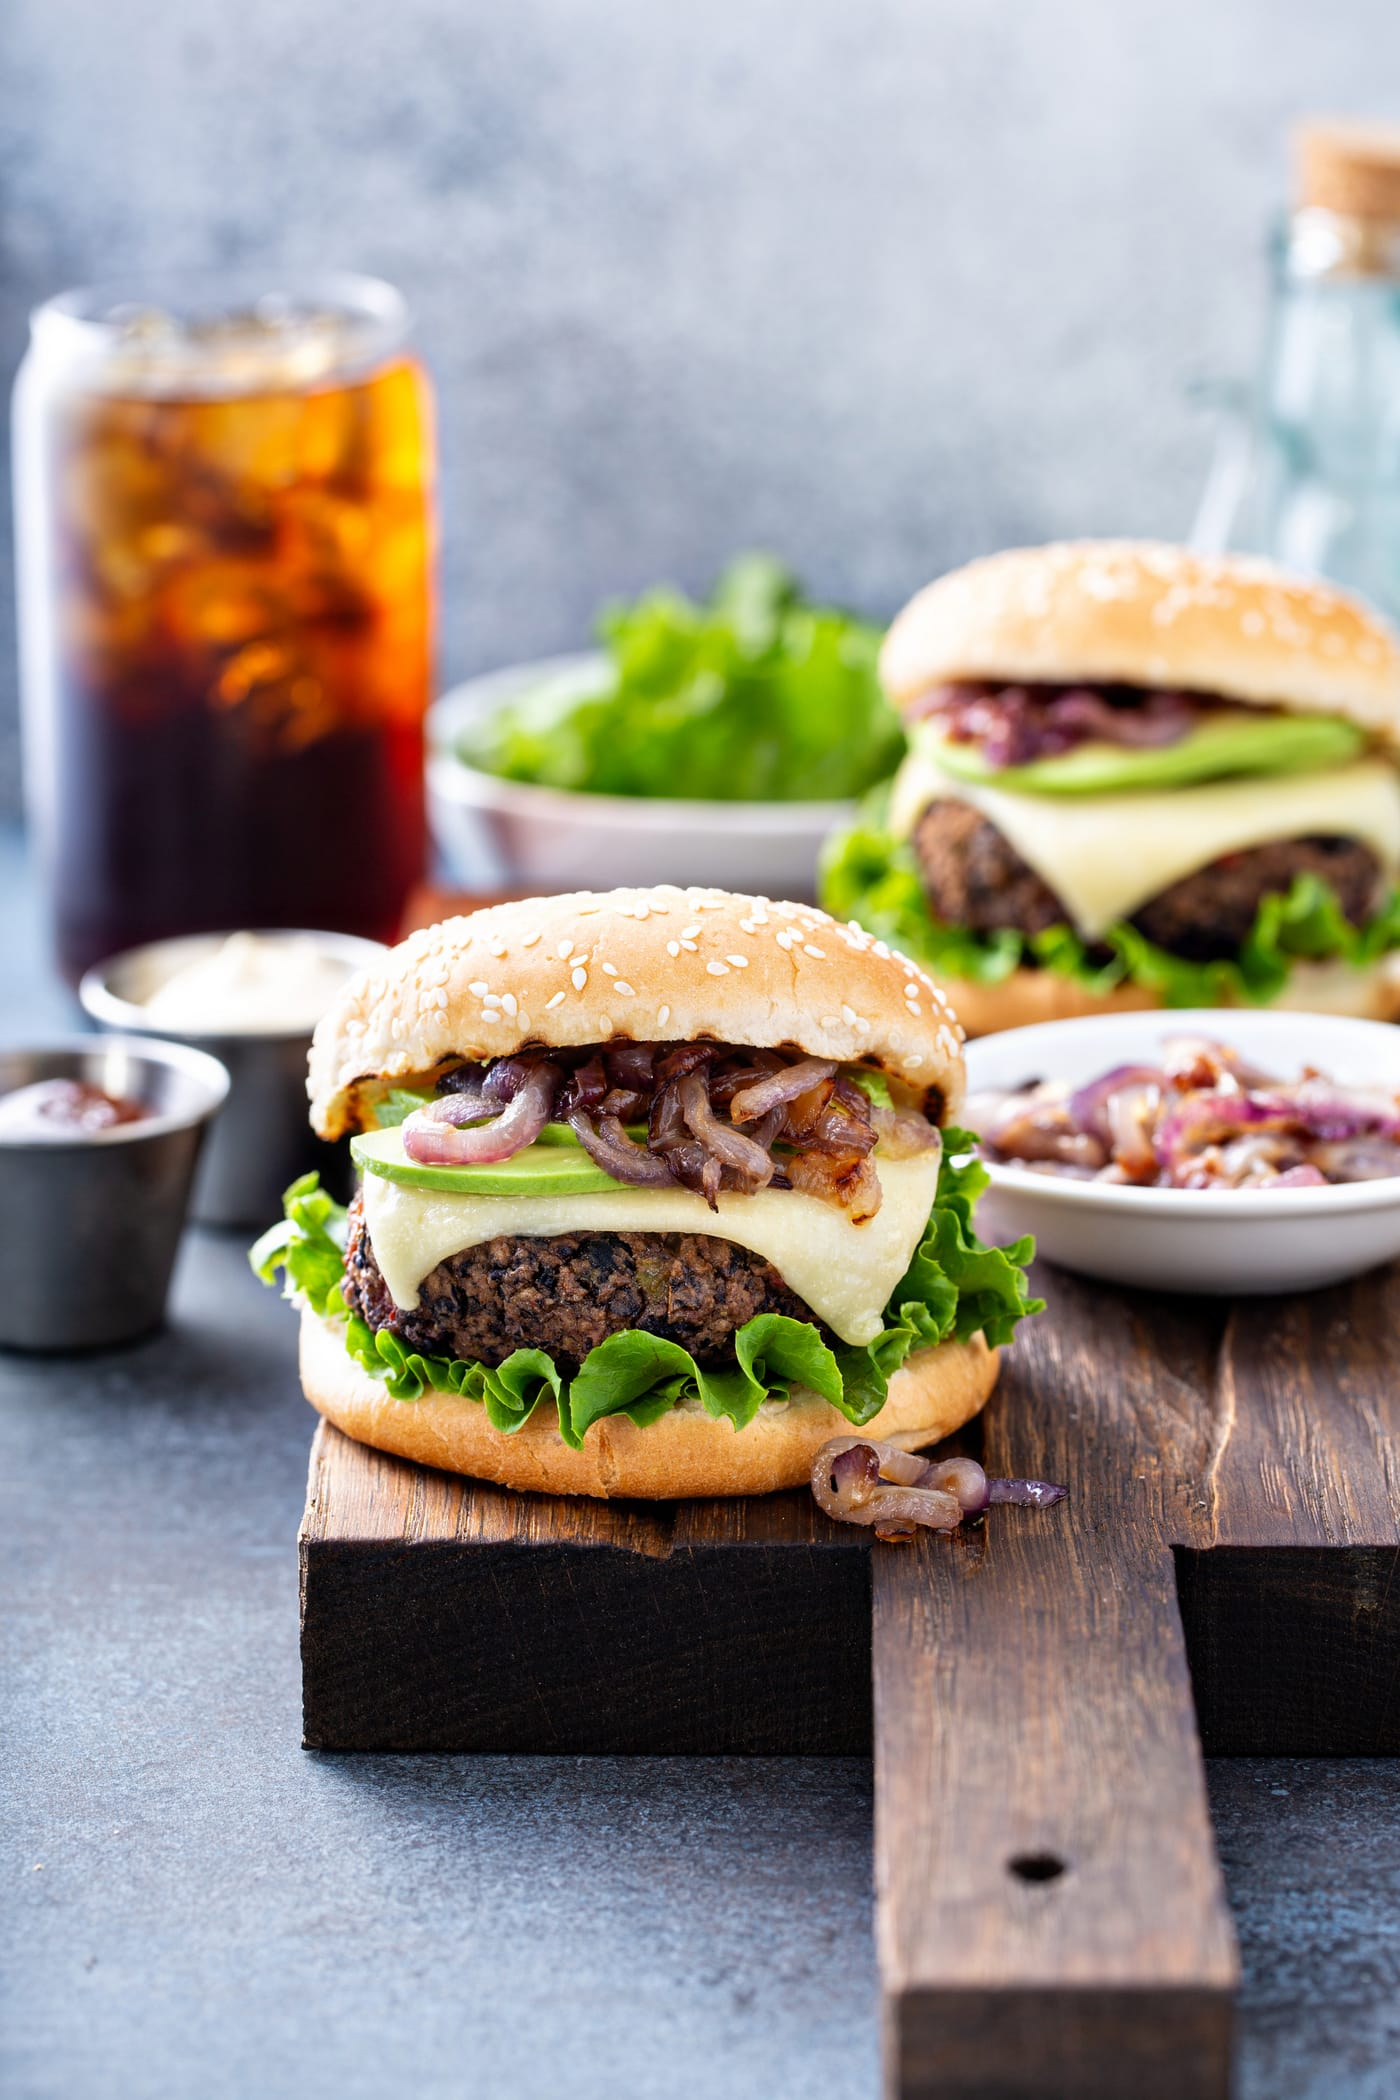 A black bean burger on a sesame seed bun topped with onions, avocado, cheese and lettuce. There is another burger, a bowl of lettuce, a container of onions, a container of mayo and a glass of iced soda in the background.